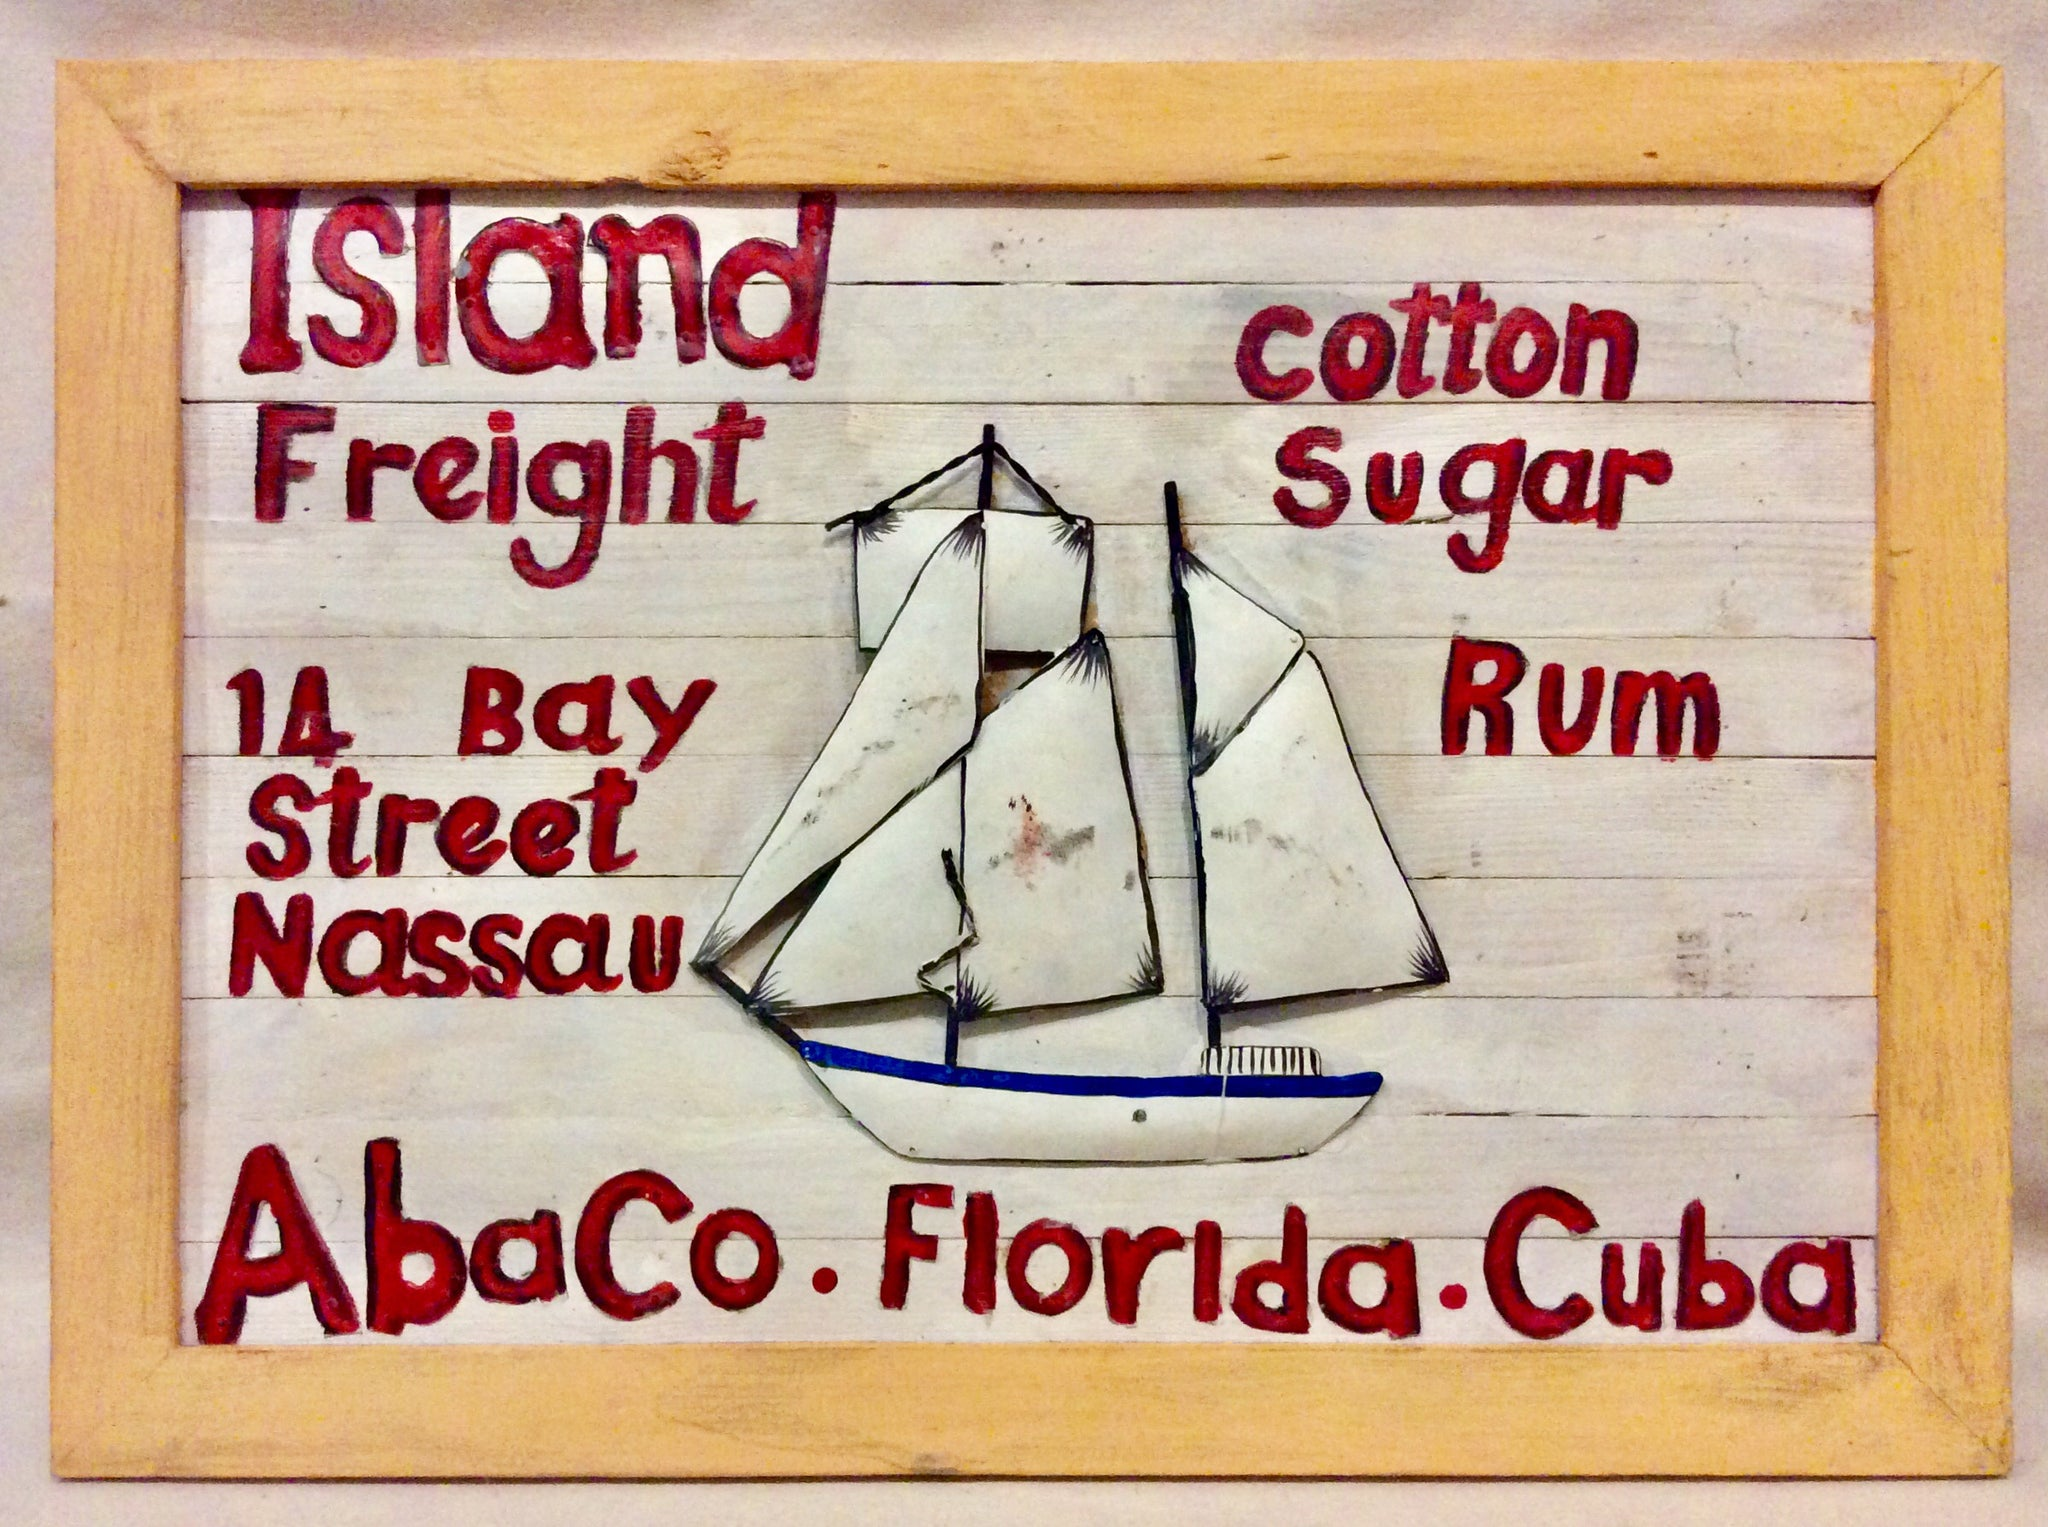 Sign, Wood and Metal, Island Freight Large